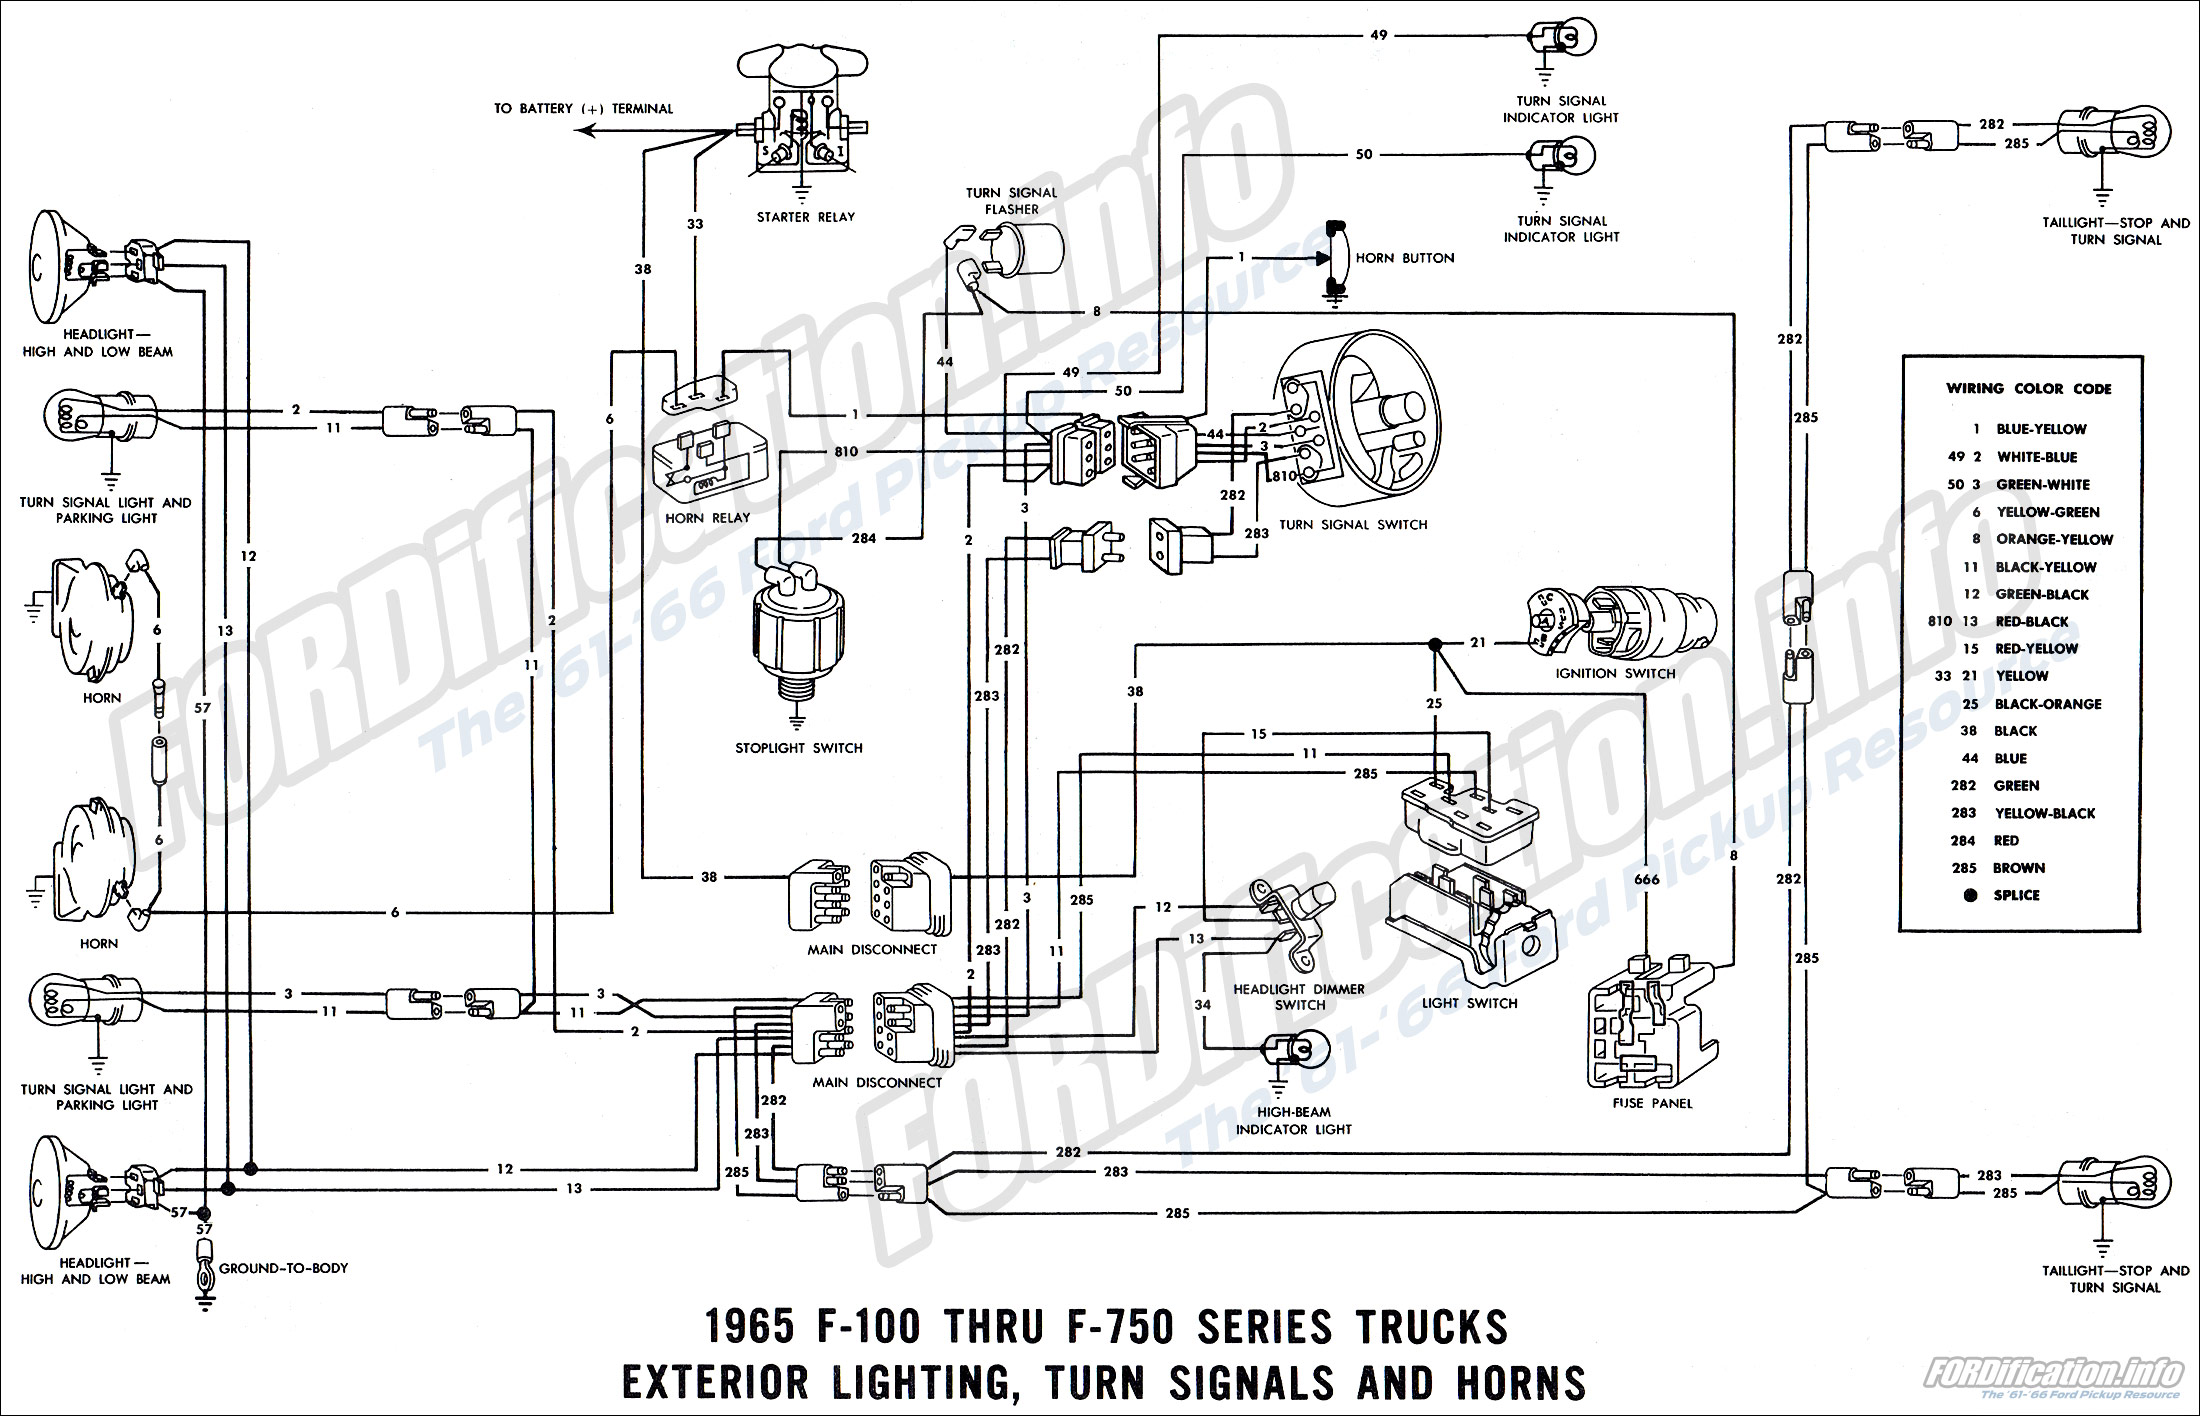 1965 F100 Wiring Diagram Electrical Schematics 1962 Ford Also 1964 On Truck Block And Schematic Diagrams U2022 Ignition Switch